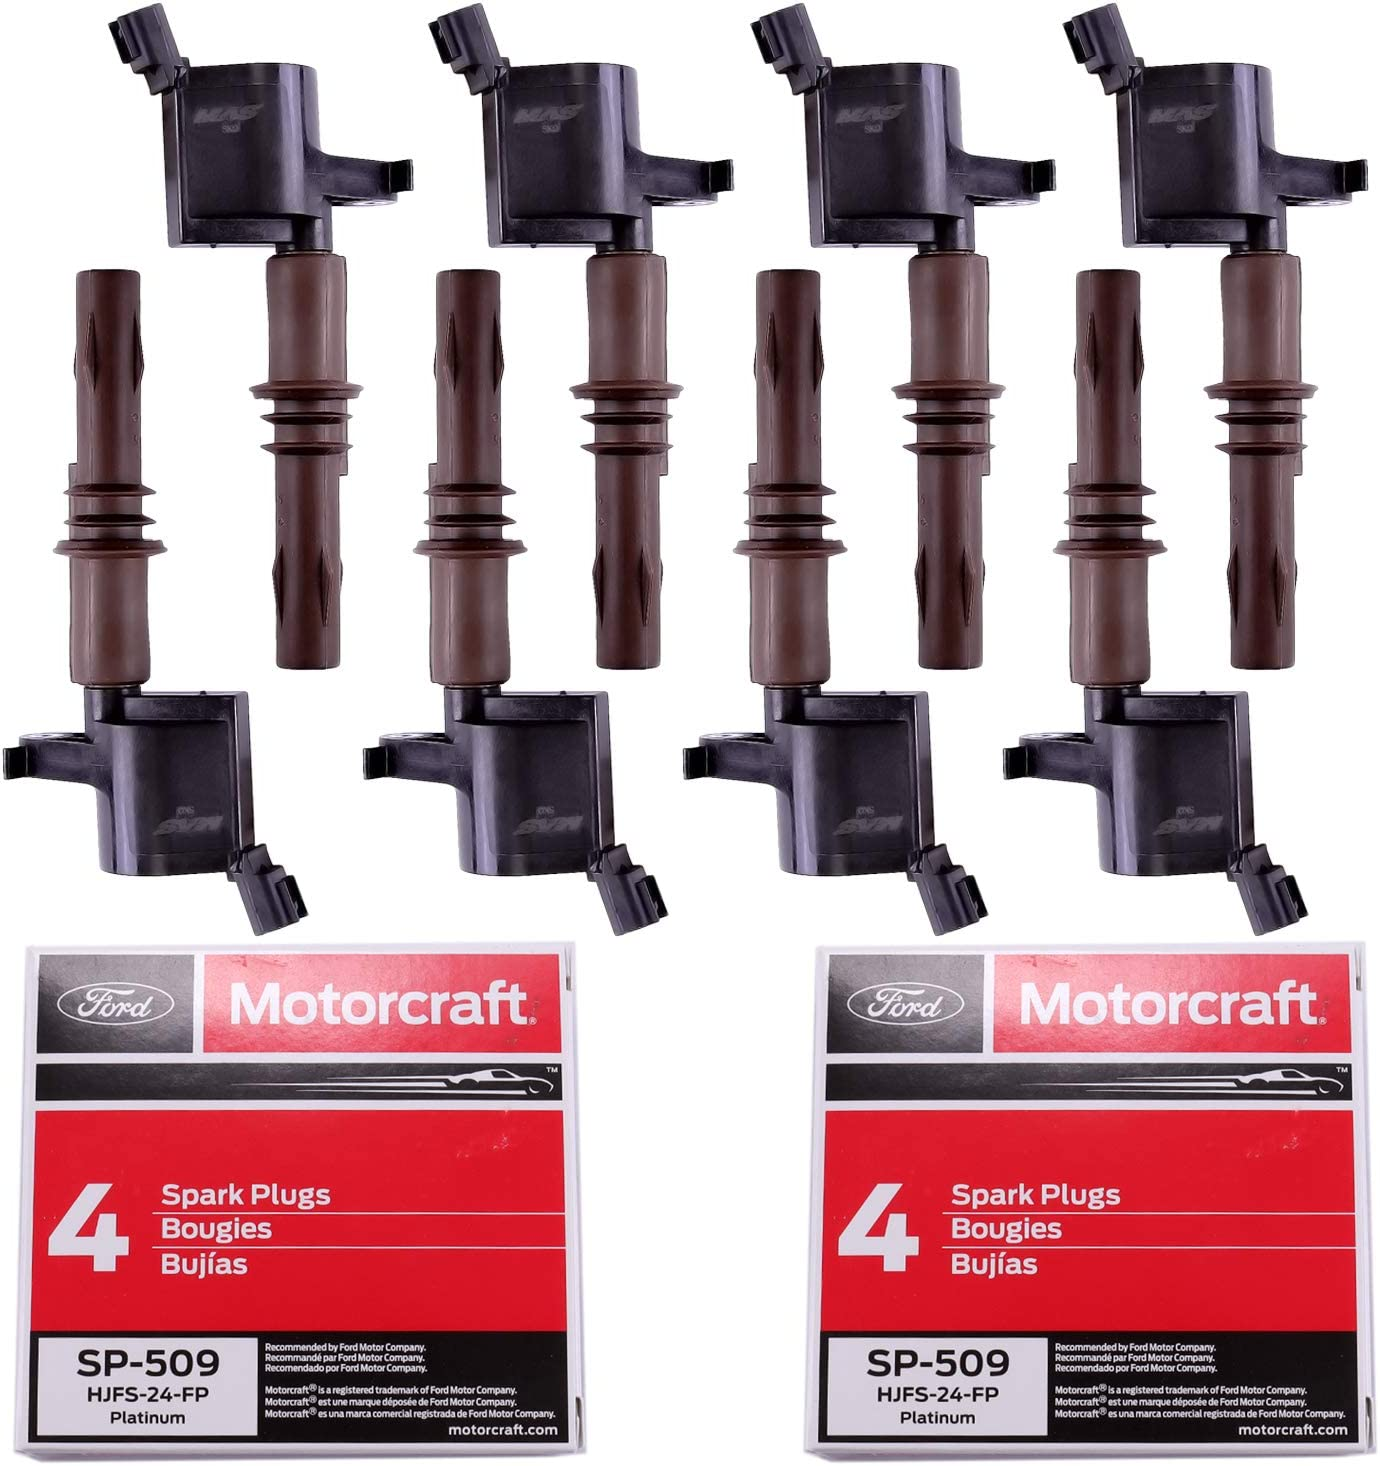 Ignition Coils DG521 and Motorcraft SP-509 Spark Plugs for Ford Expedition F-150 Super Duty F-250 F-350 F-450 F-550 F-350 F53 Compatible 4.6L 5.4L 6.8L with C1659 DG521 8L3Z-12029-A